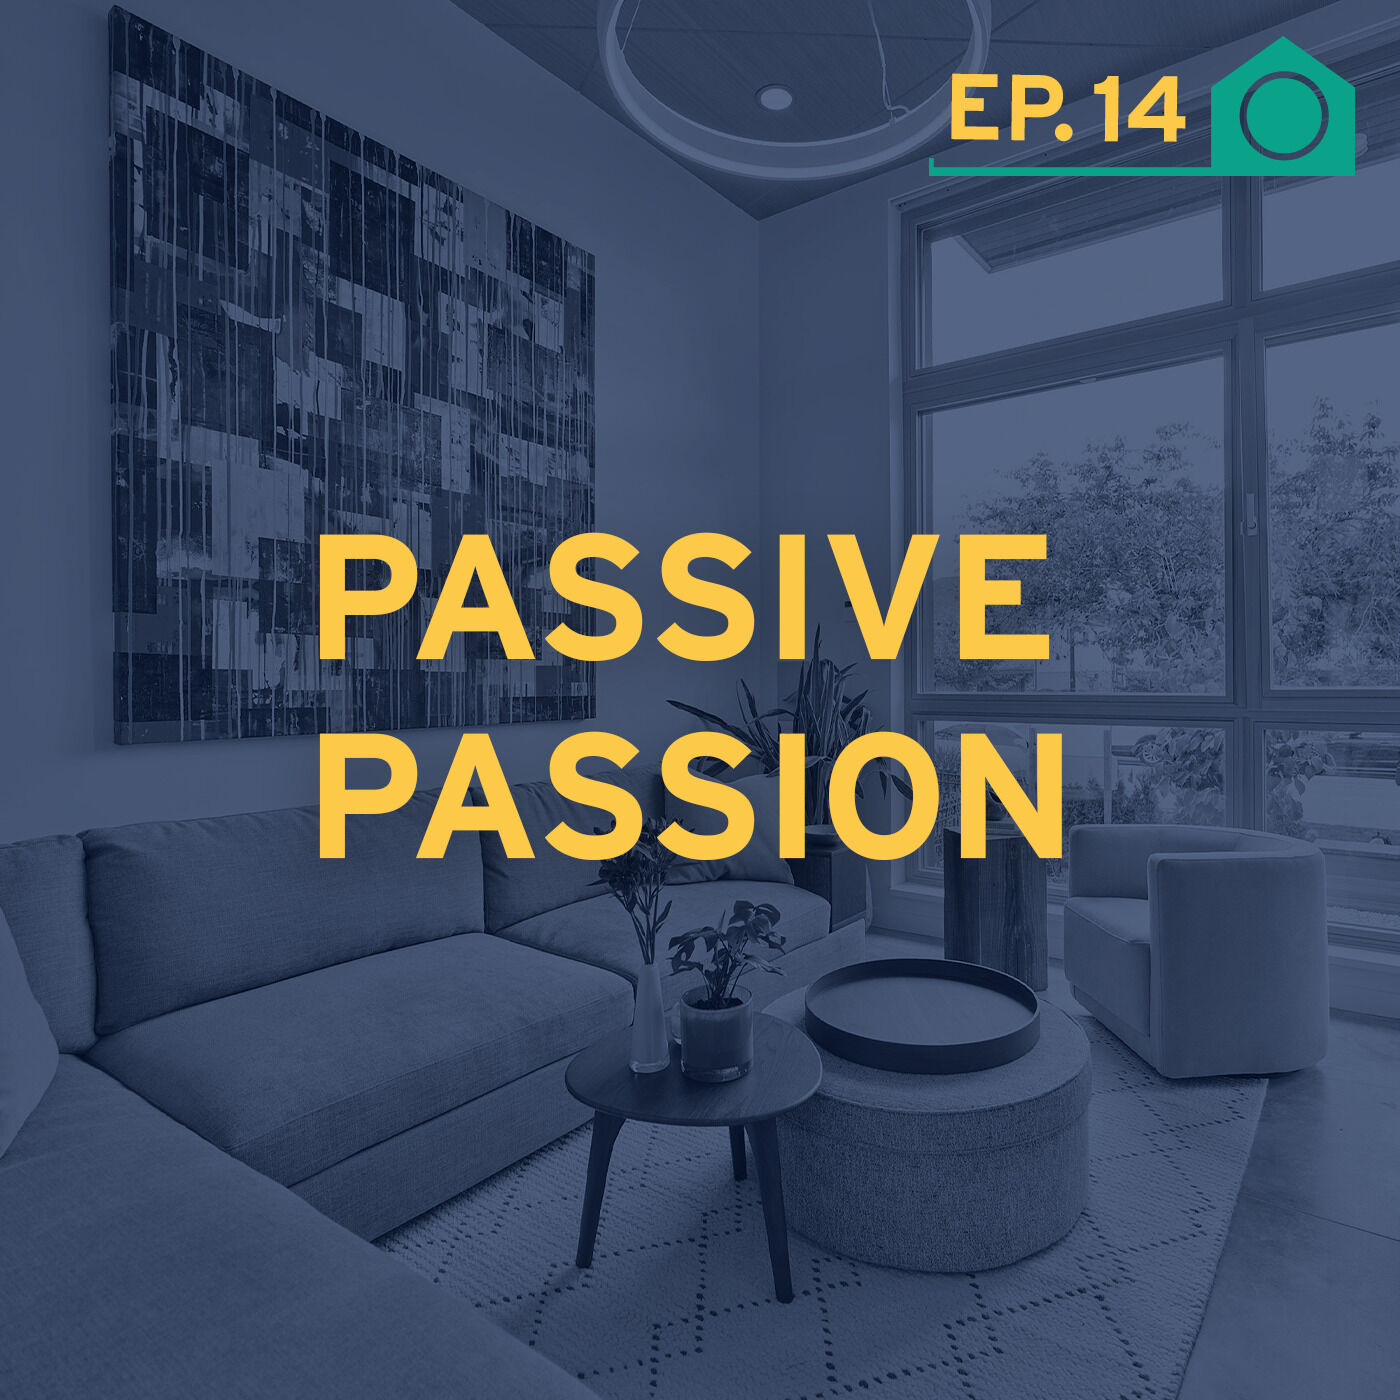 Passive Passion: Lifestyle benefits of living in a passive home